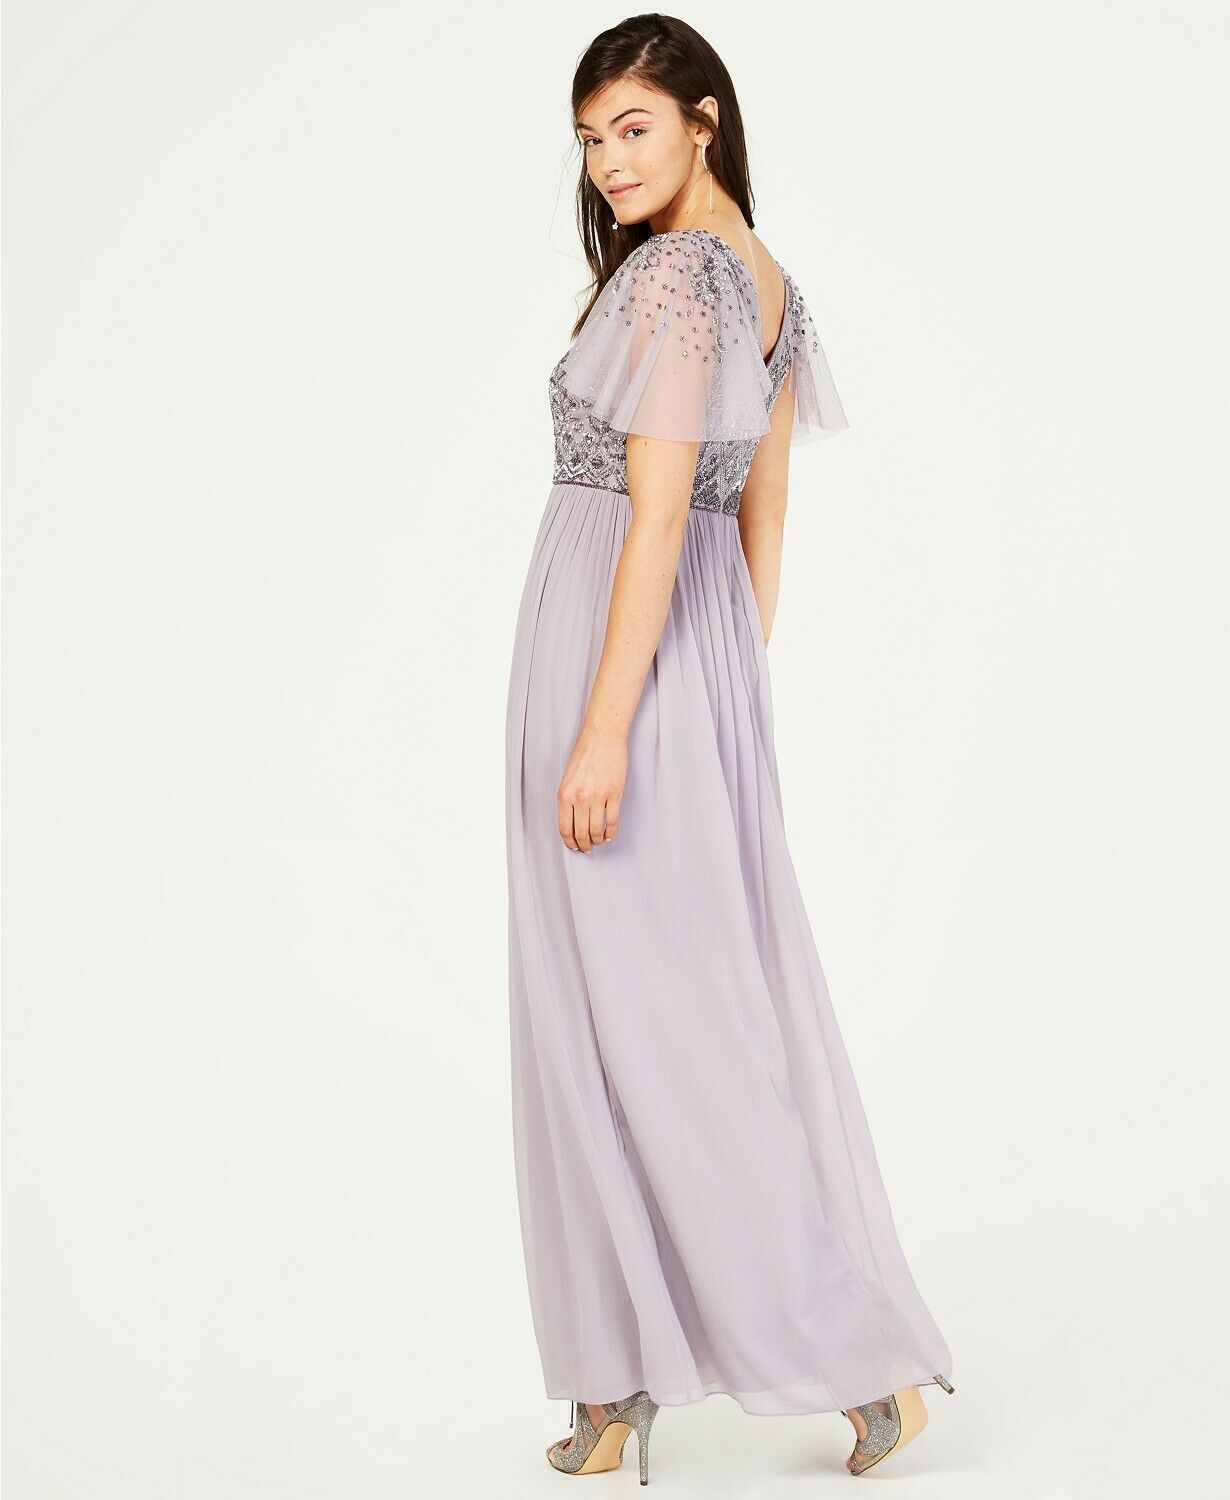 Adrianna Papell Illusion-Sleeve Beaded A-Line Gown Lilac Grey Size 6 $249 image 2